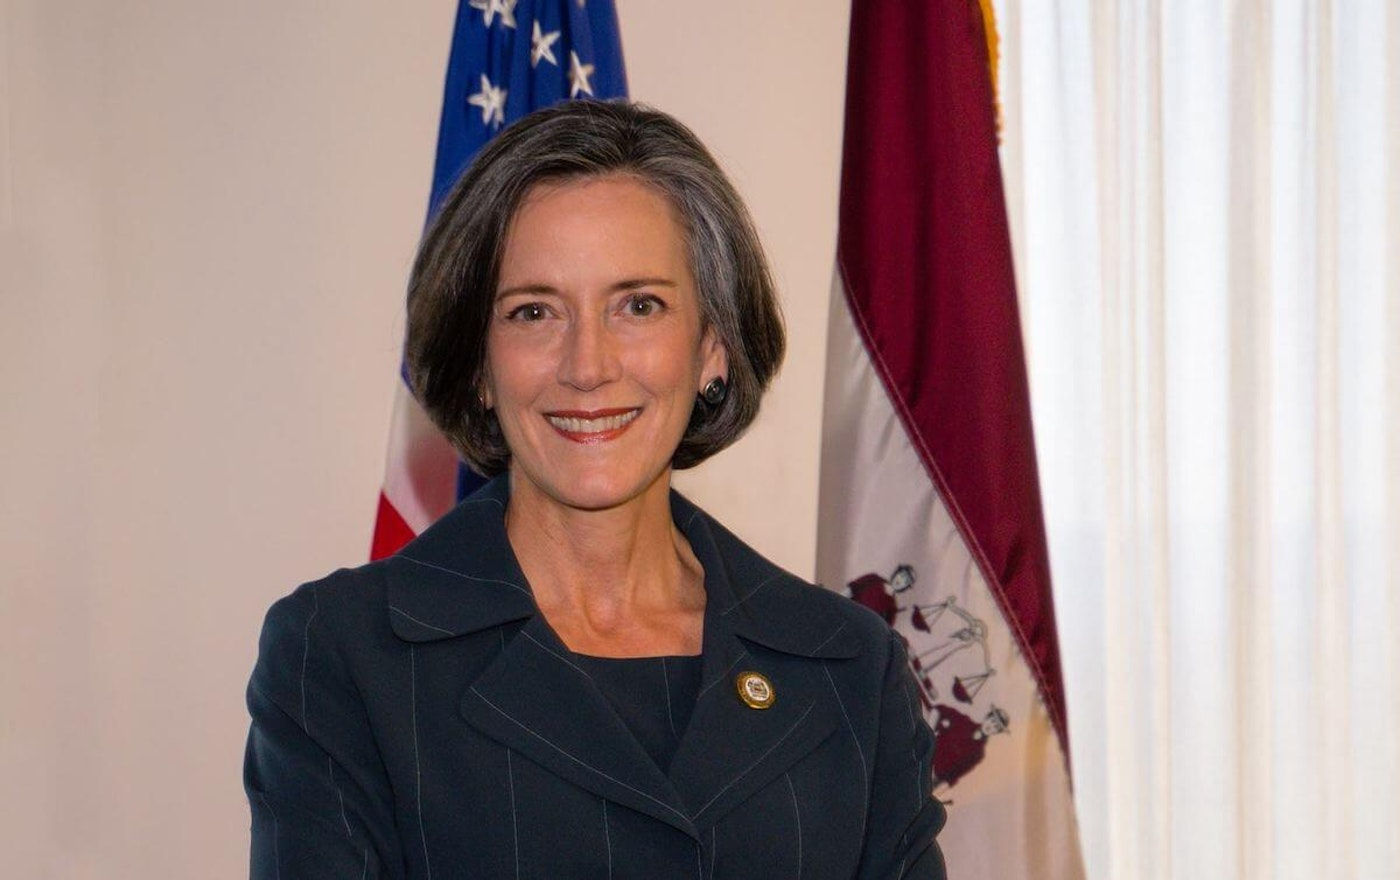 Dr. Valerie Arkoosh, the chairperson of the Montgomery County Board of Commissioners, plans to run for the state's open US Senate seat in 2022. (Courtesy of Montgomery County)